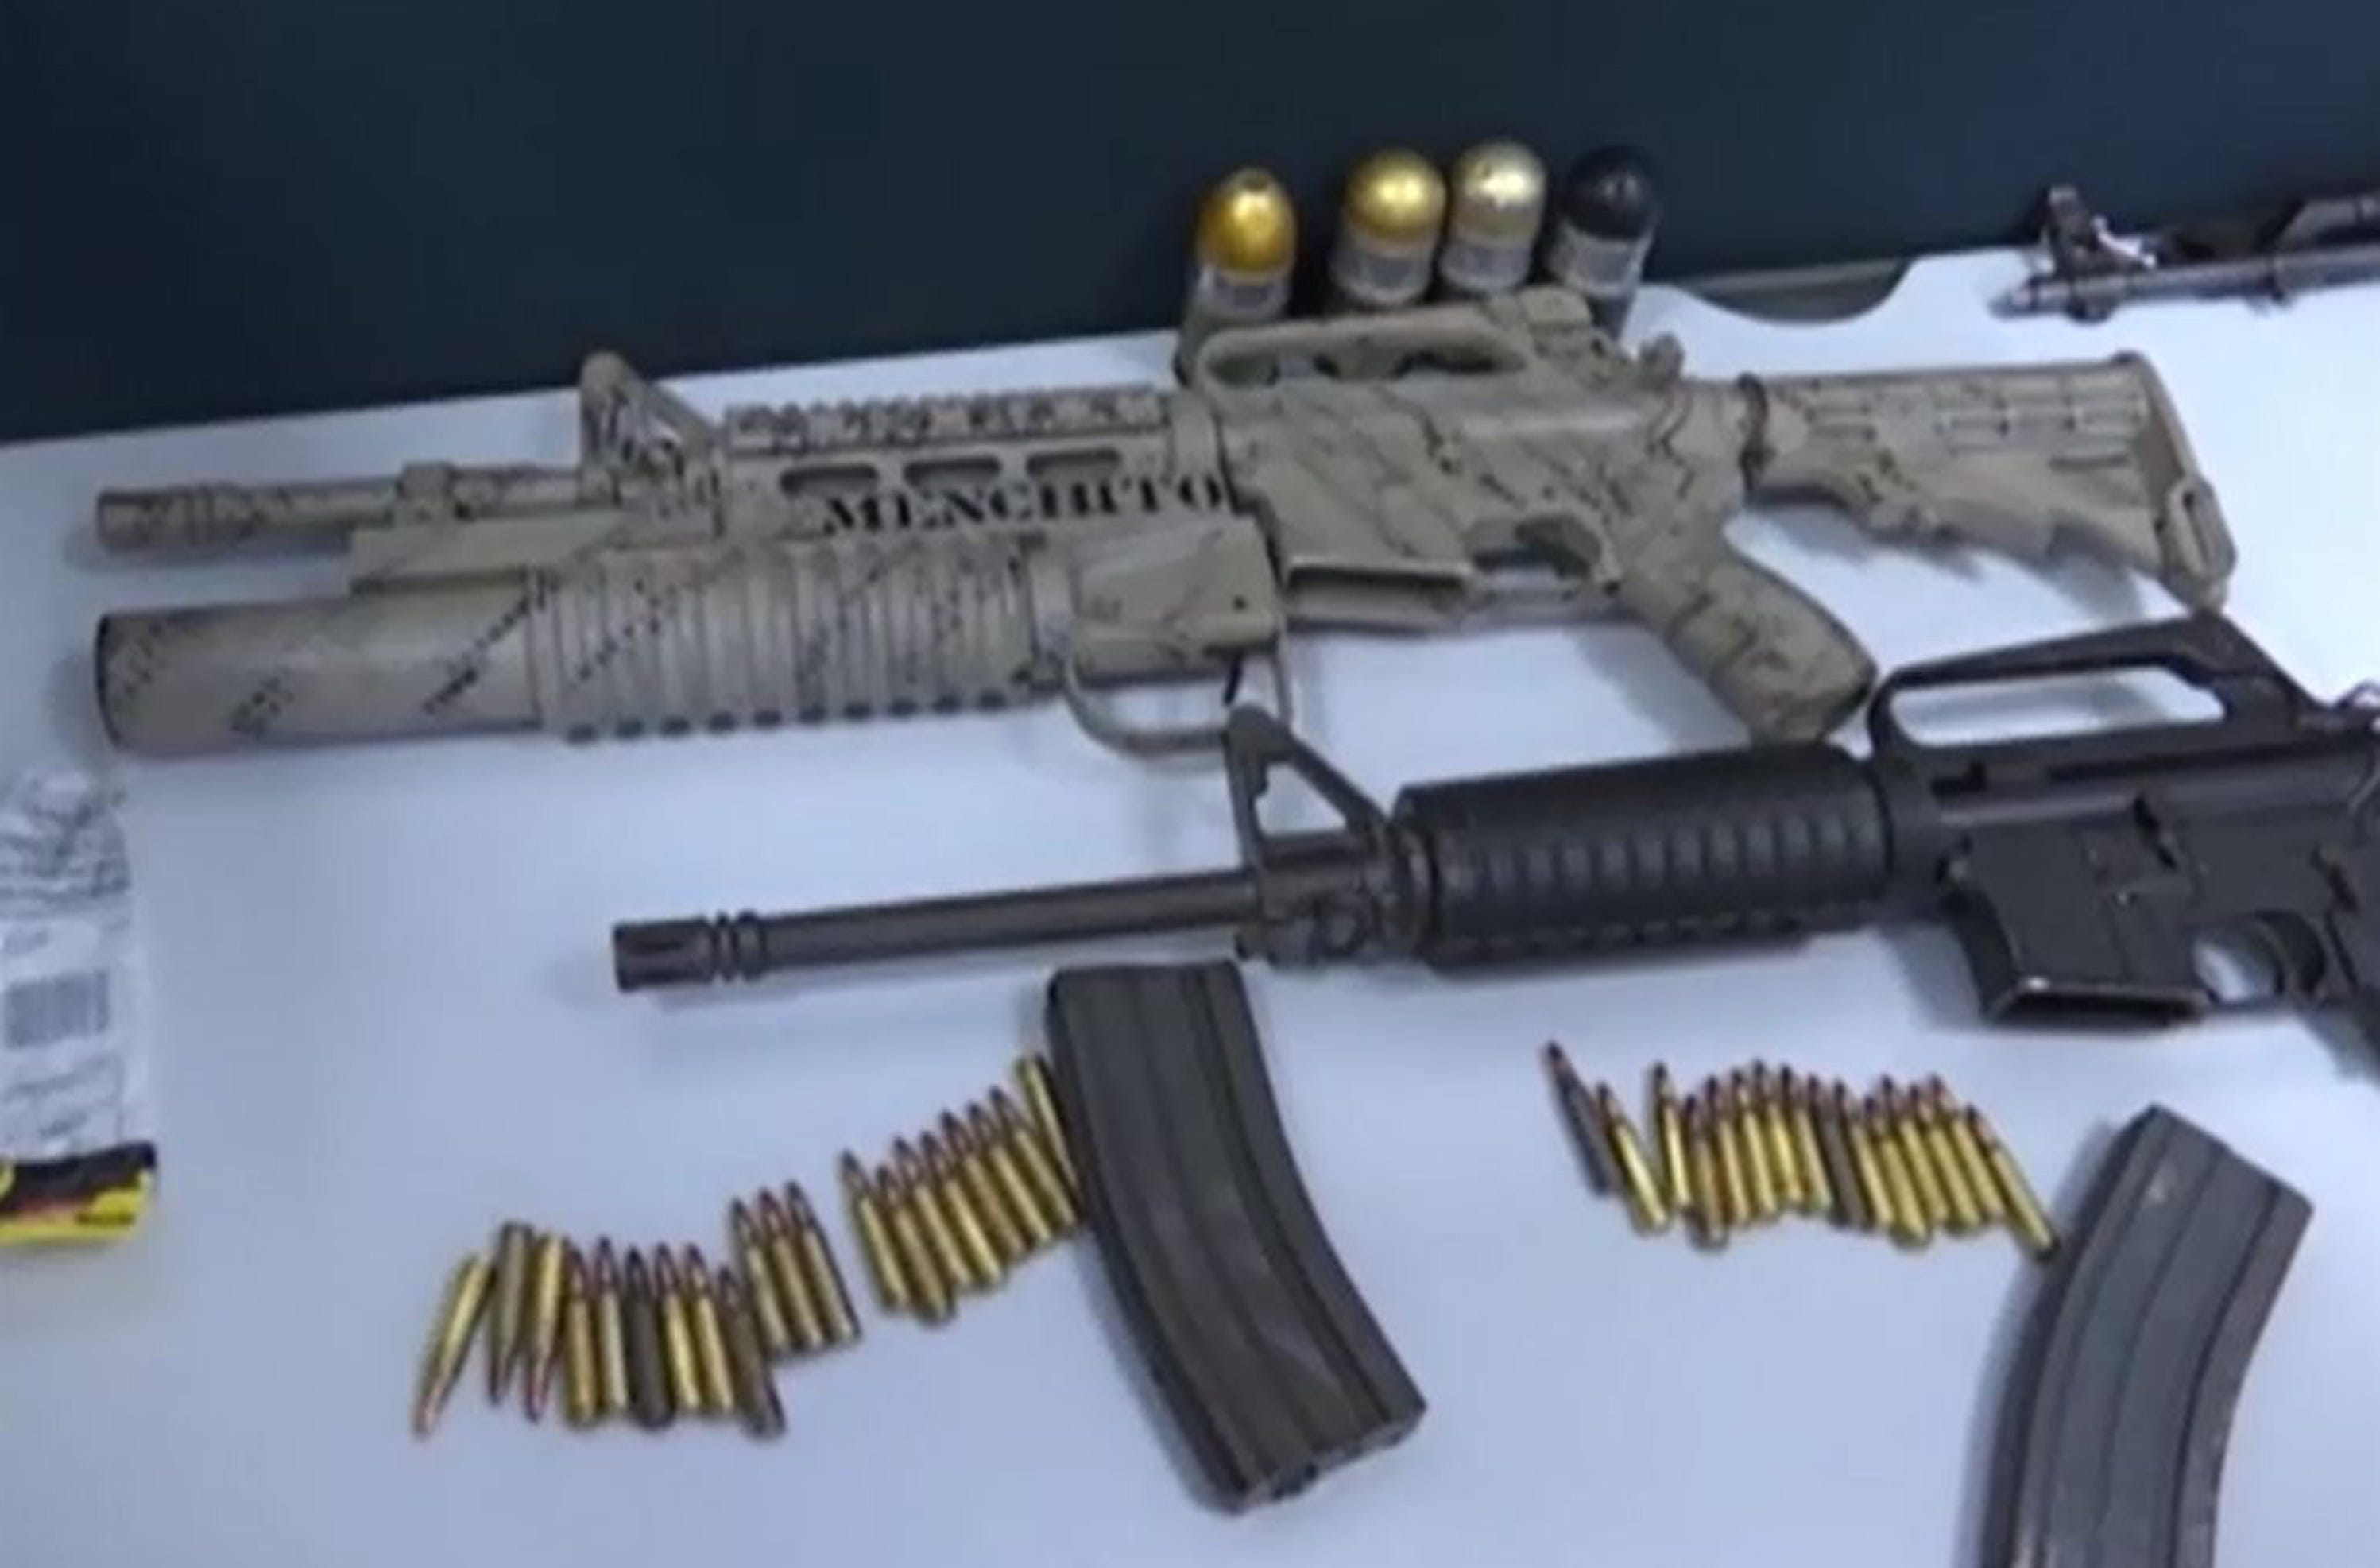 """El Mencho's son, Rubén Oseguera González, was No. 2 in command of the billion-dollar cartel. During his arrest, police found these assault rifles. One is inscribed """"CJNG 02 JR,"""" and the other  displays """"Menchito,"""" which means little Mencho."""